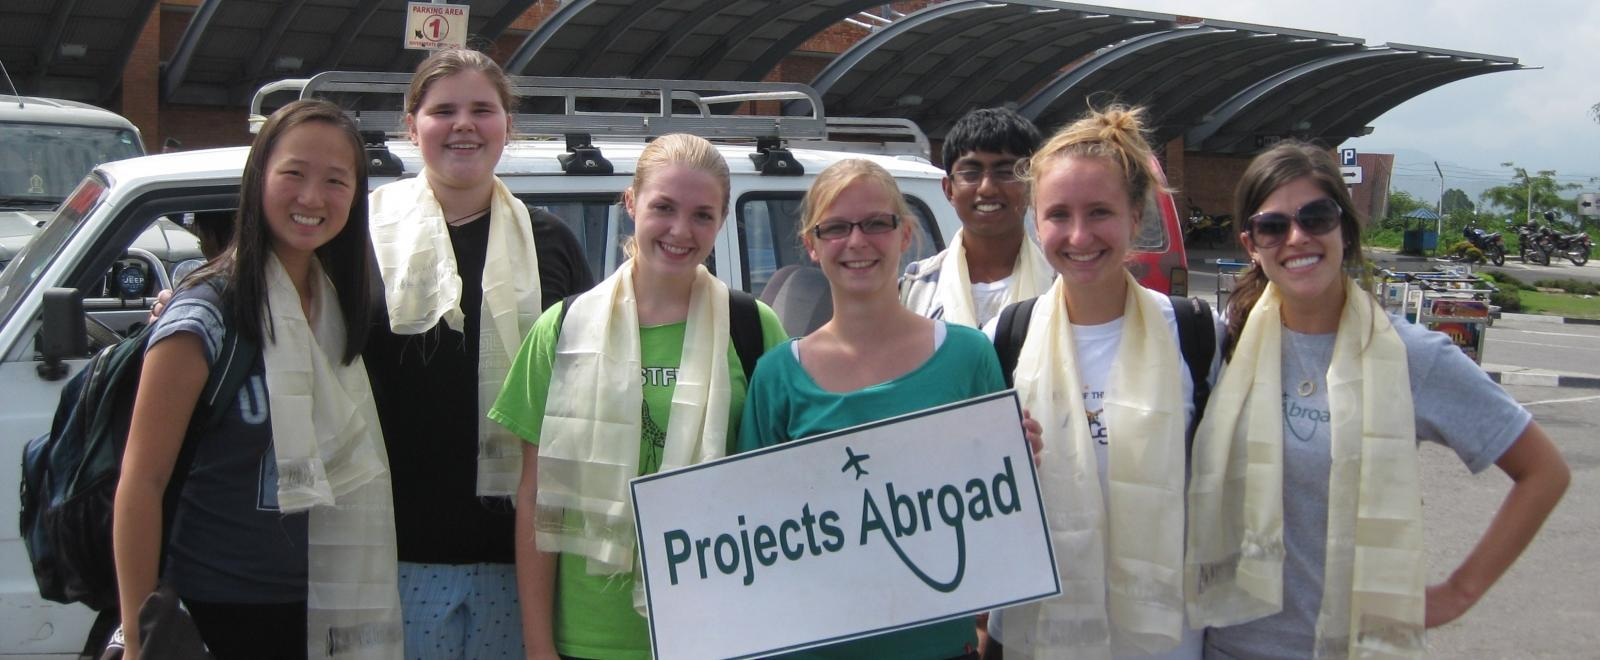 Staff arrive at the airport to welcome Projects Abroad volunteers in Nepal.